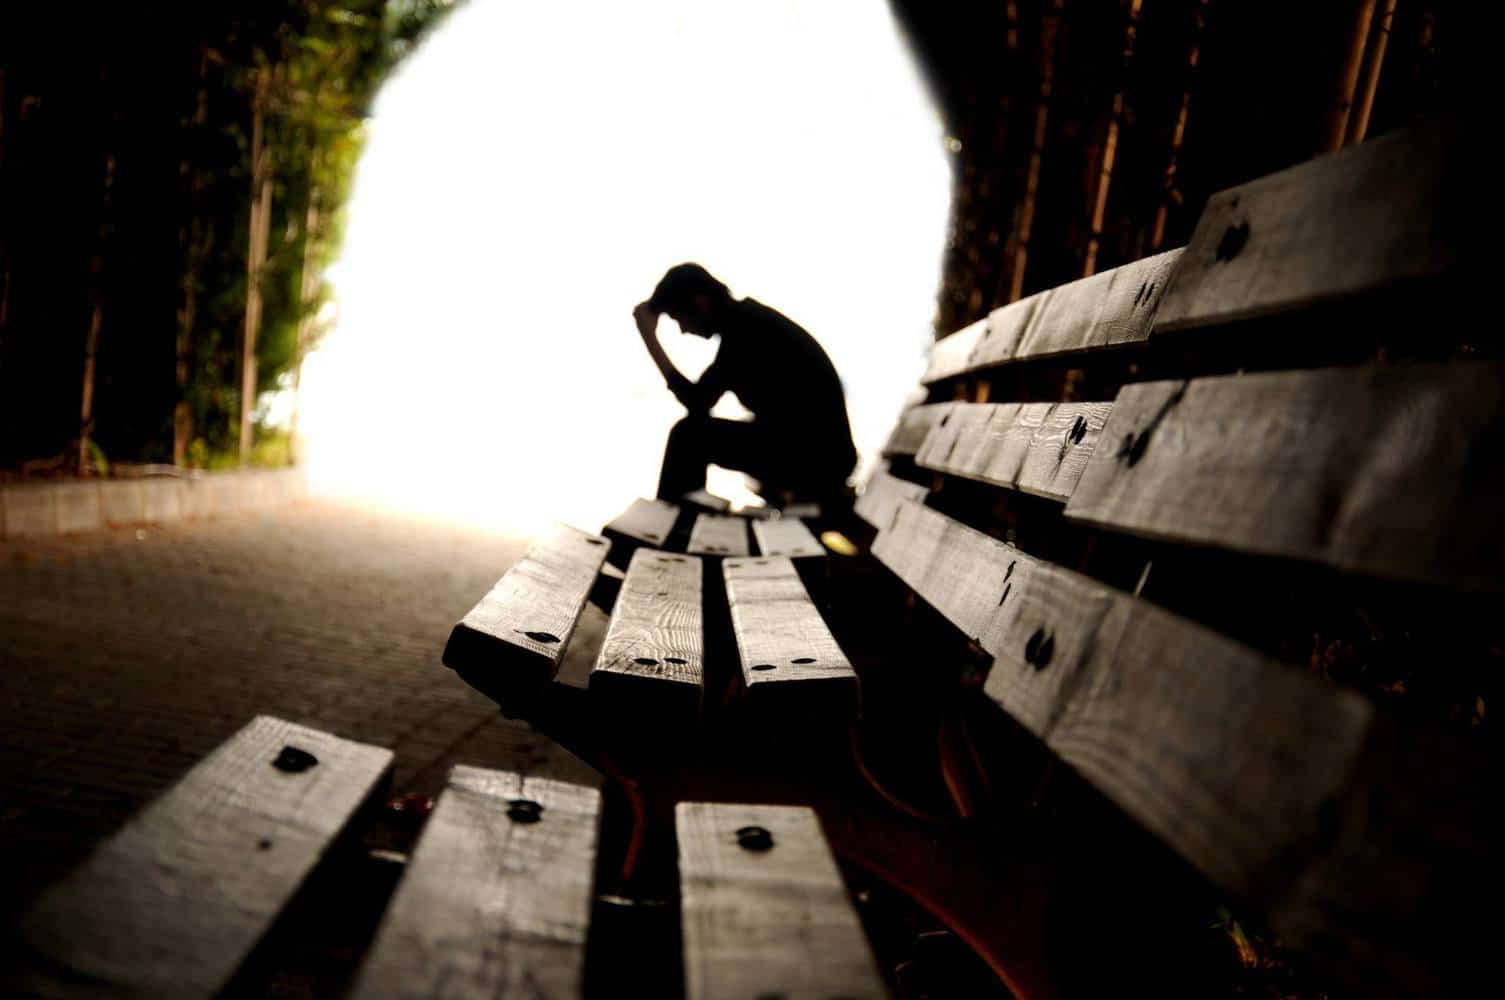 A depressed person sitting at a bench.